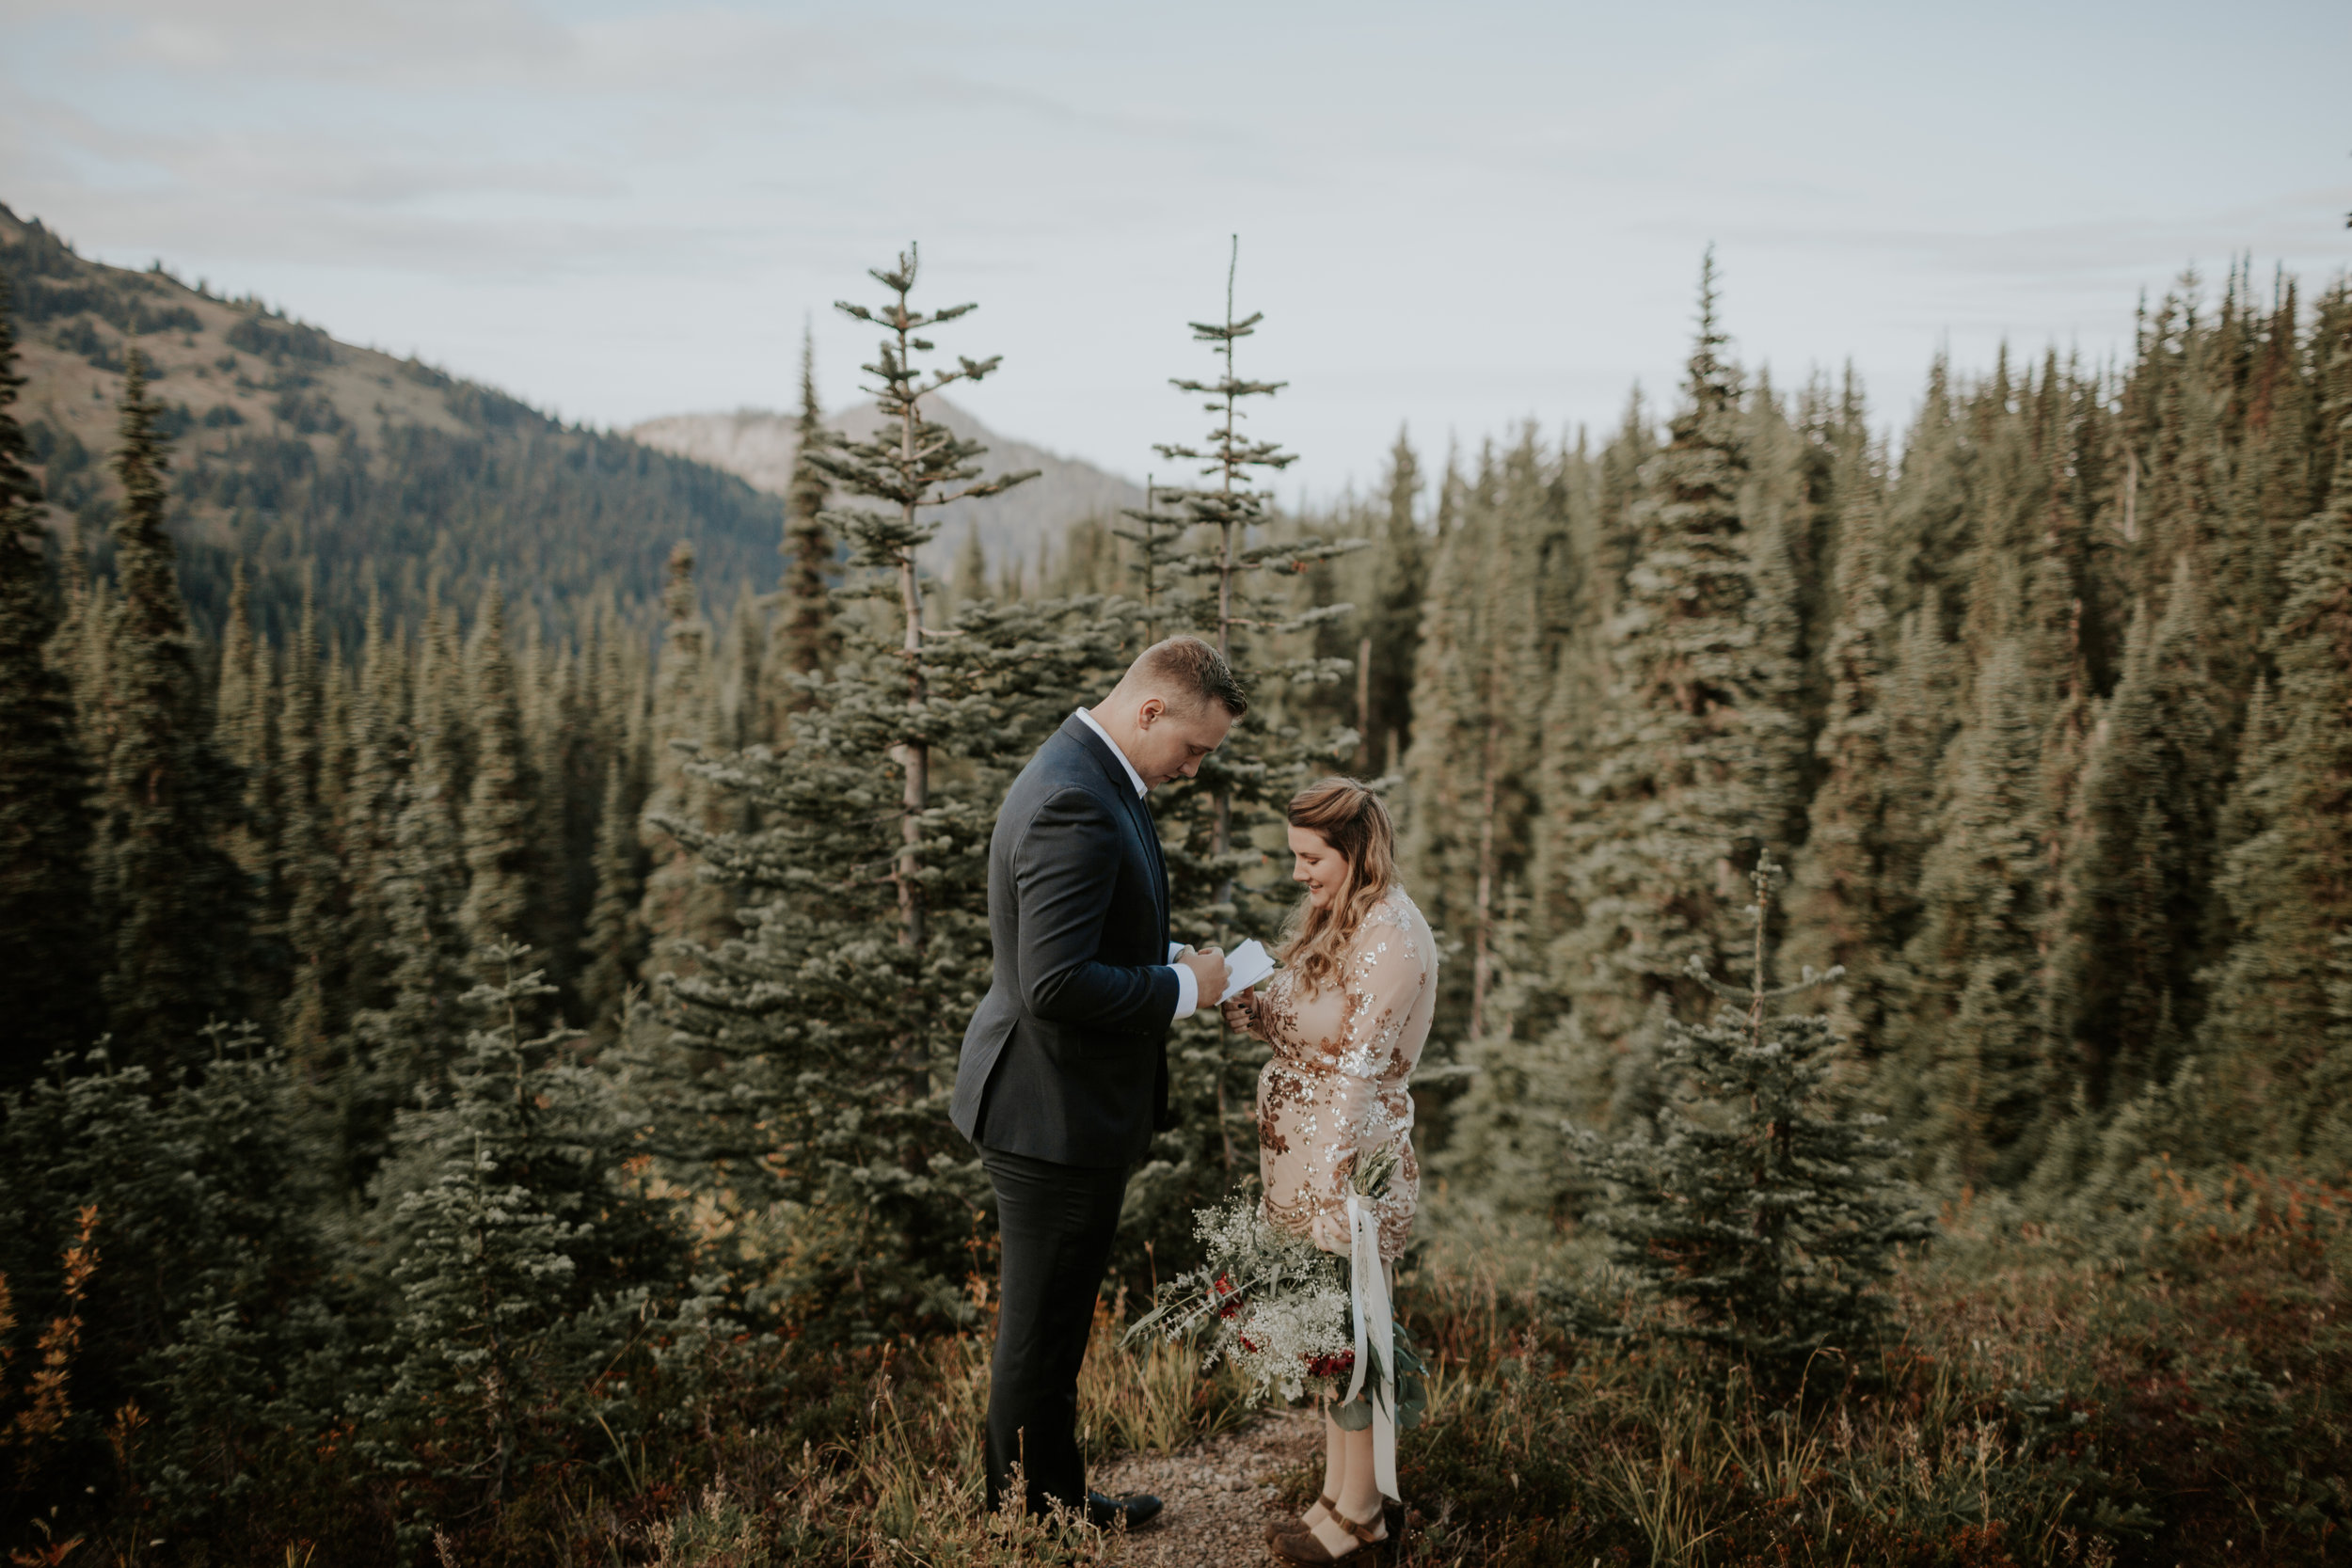 PNW-Hurricane-Ridge-Port-Angeles-Washington-elopement-photographer-kayla-dawn-photography-kayladawnphoto-wedding-anniversary-photoshoot-olympic-peninsula-126.jpg